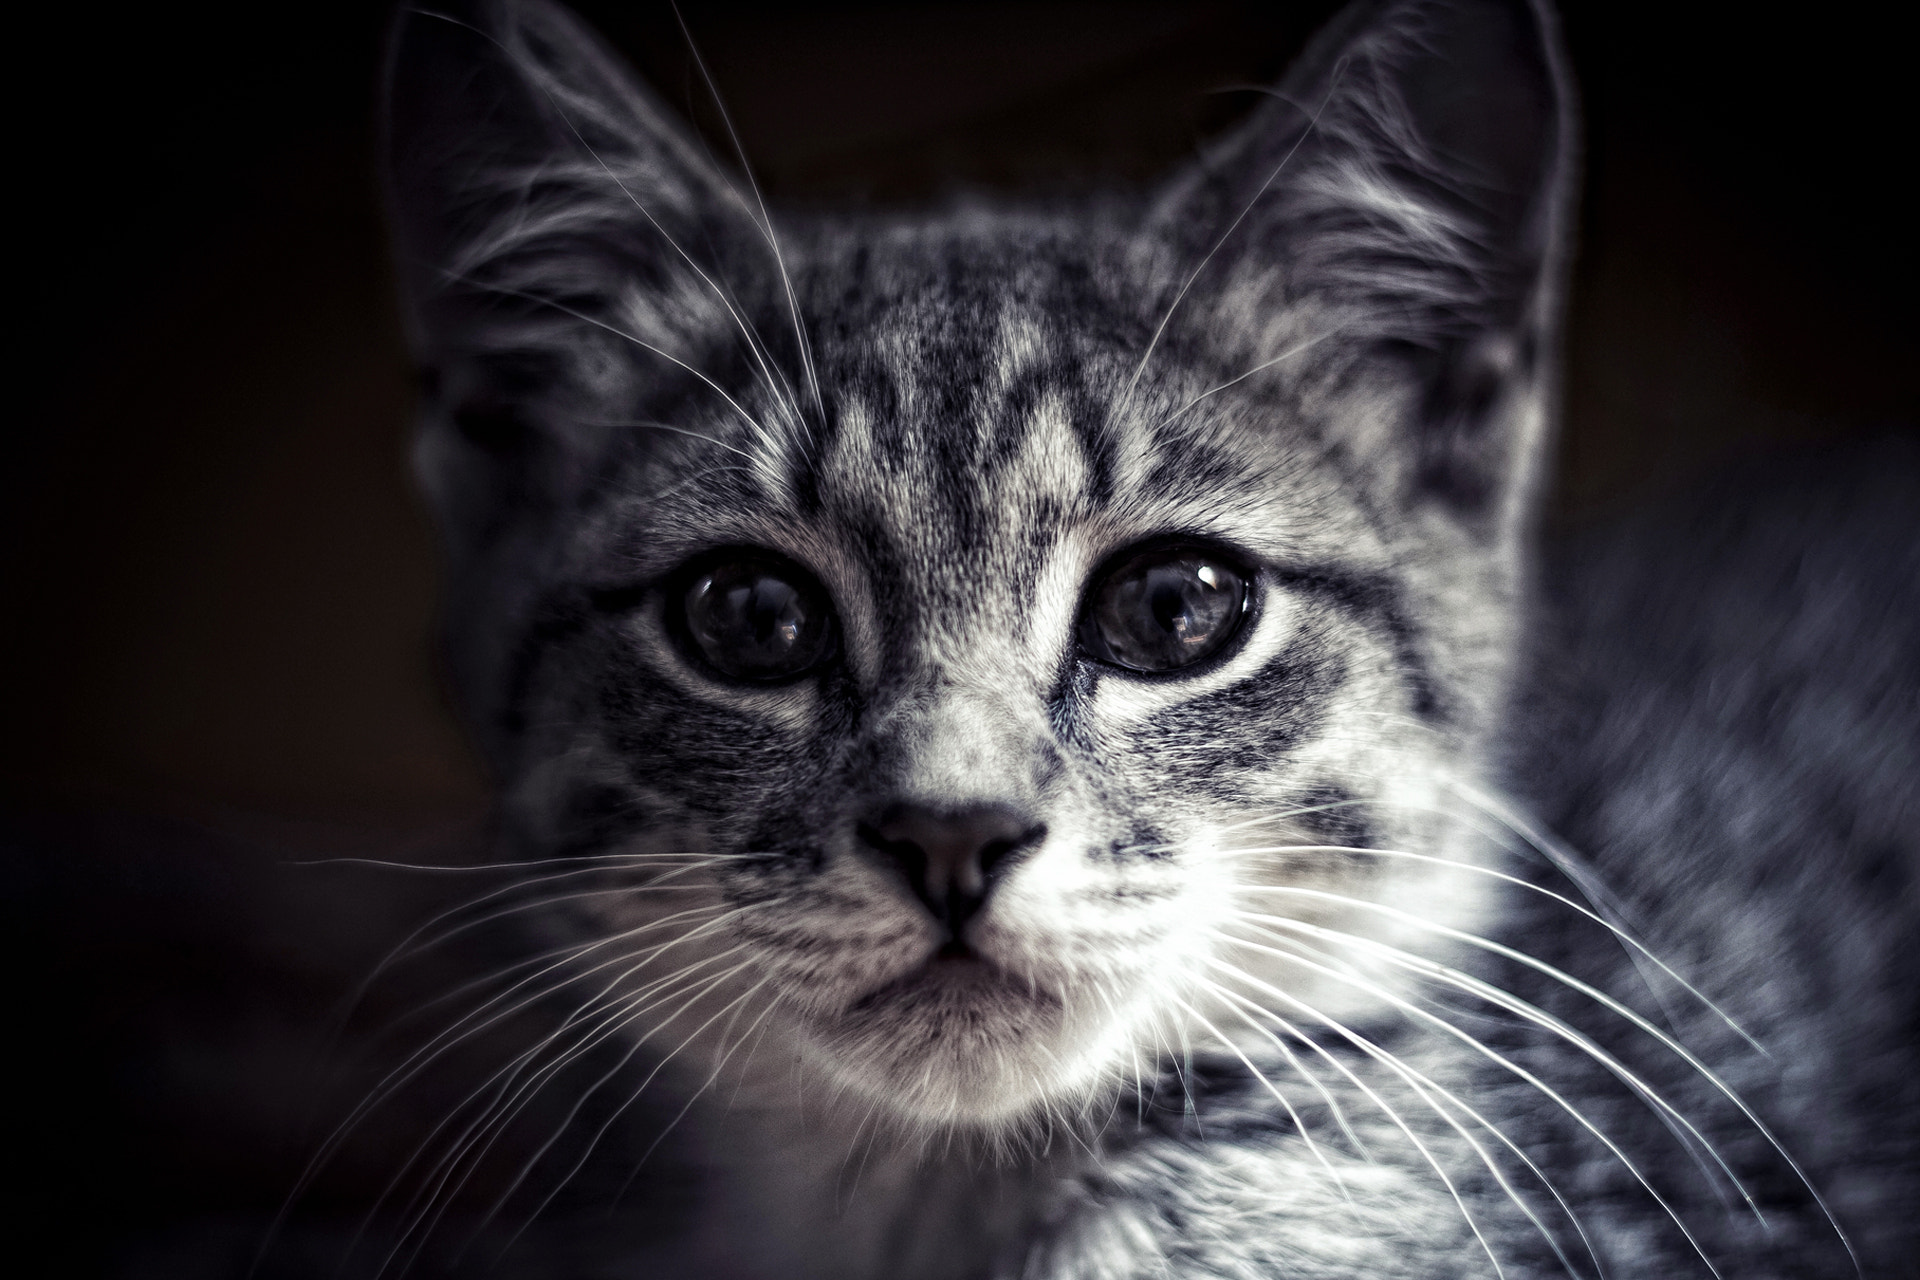 Photograph Cat by Andrey PospeloV on 500px